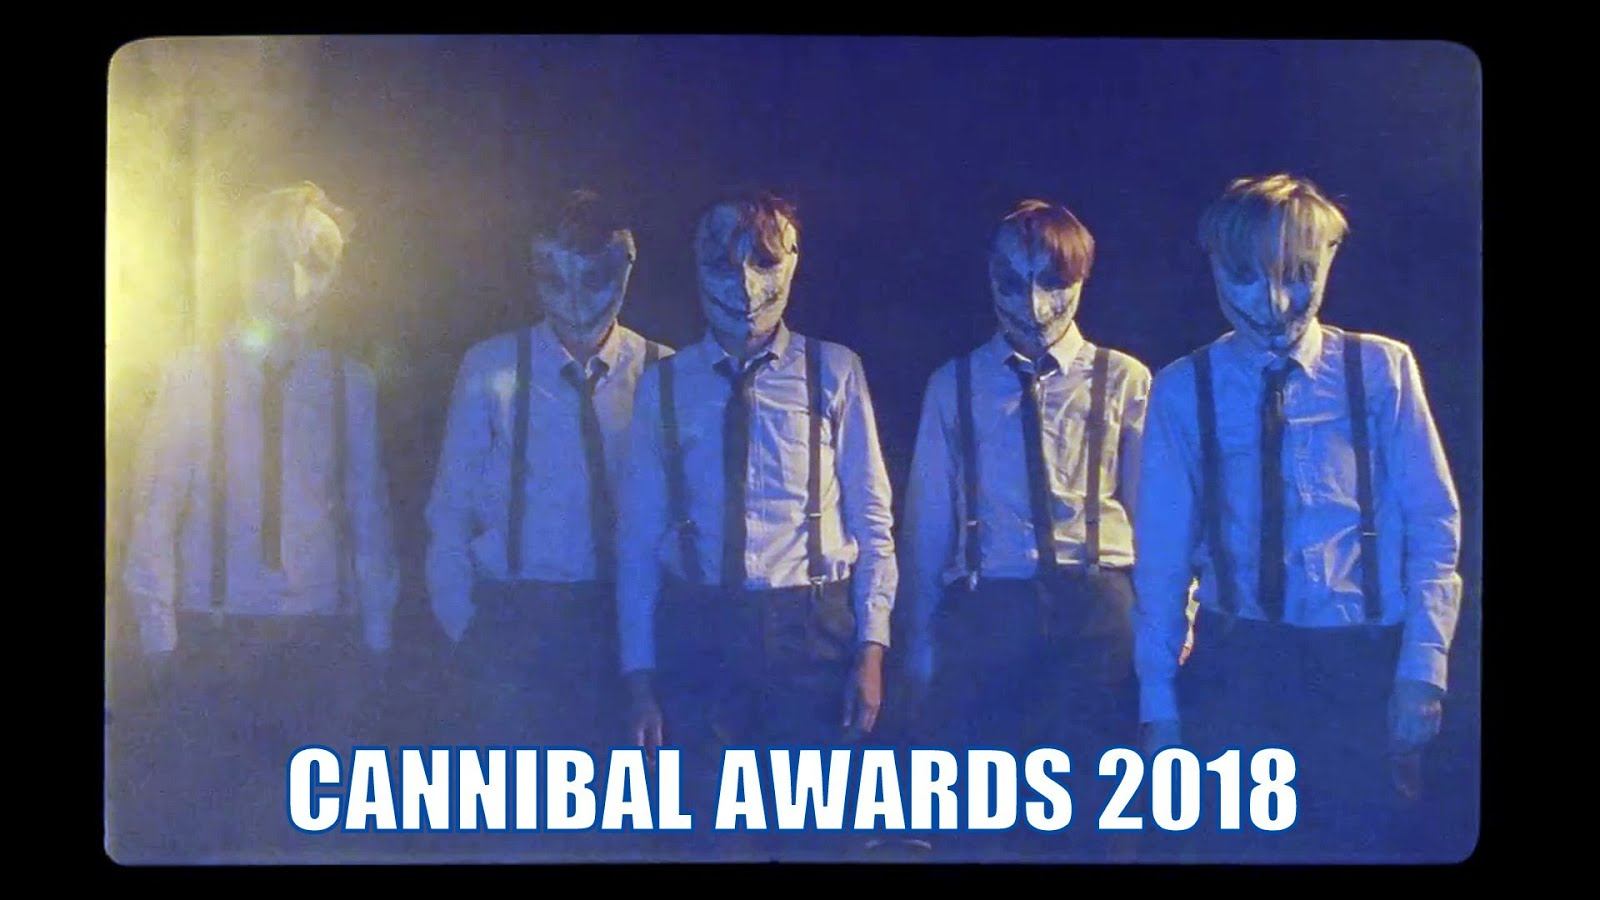 CANNIBAL AWARDS 2018